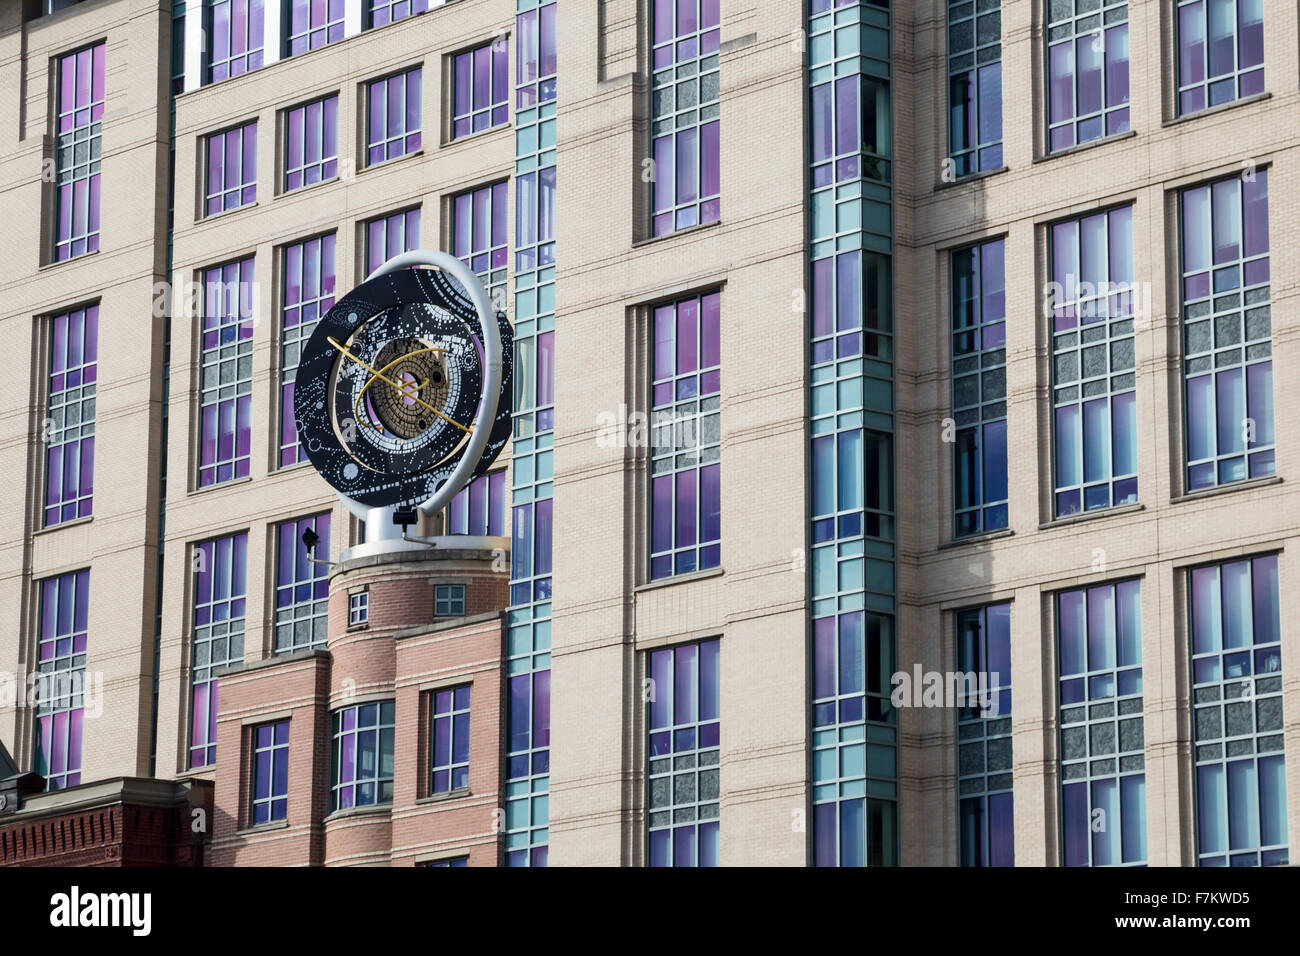 Washington, DC - The Keck Center of the National Academies of Sciences, Engineering, and Medicine. - Stock Image